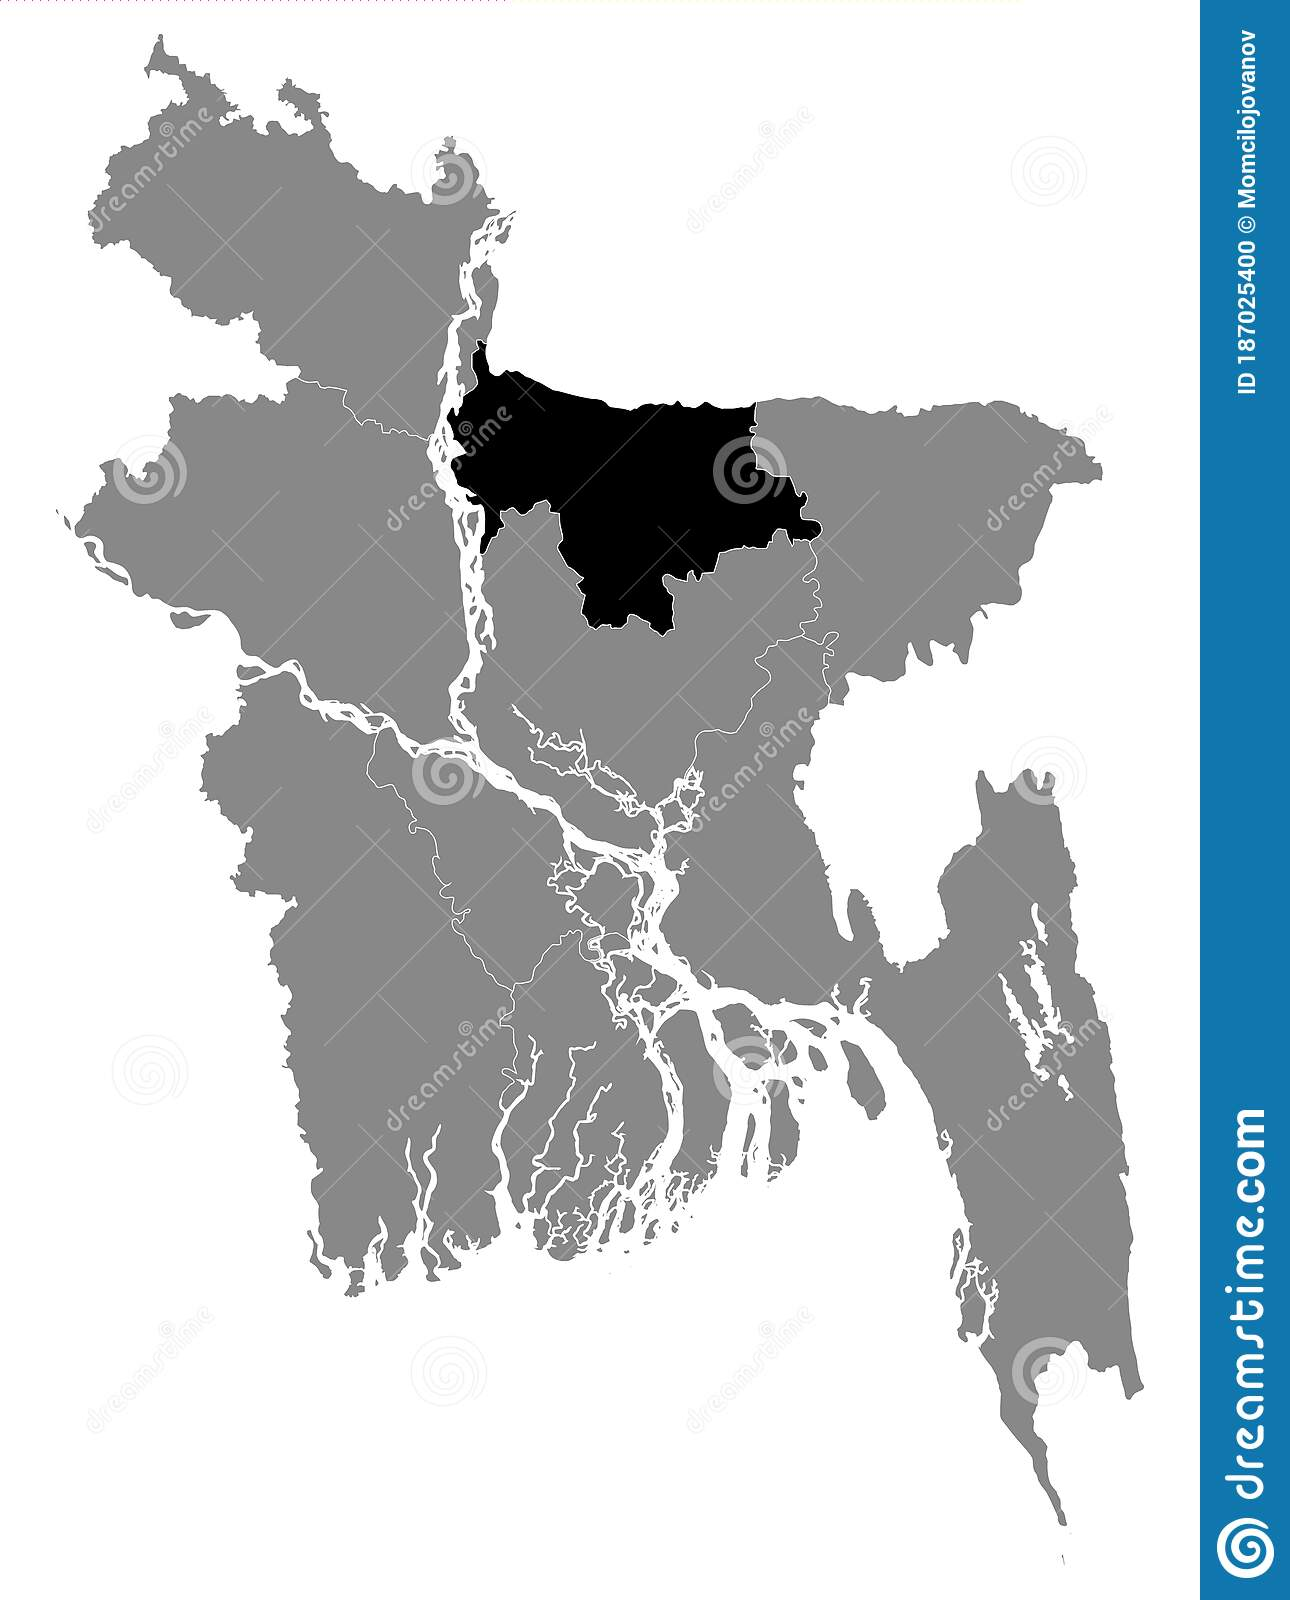 Picture of: Bangladeshi Map Stock Illustrations 1 062 Bangladeshi Map Stock Illustrations Vectors Clipart Dreamstime